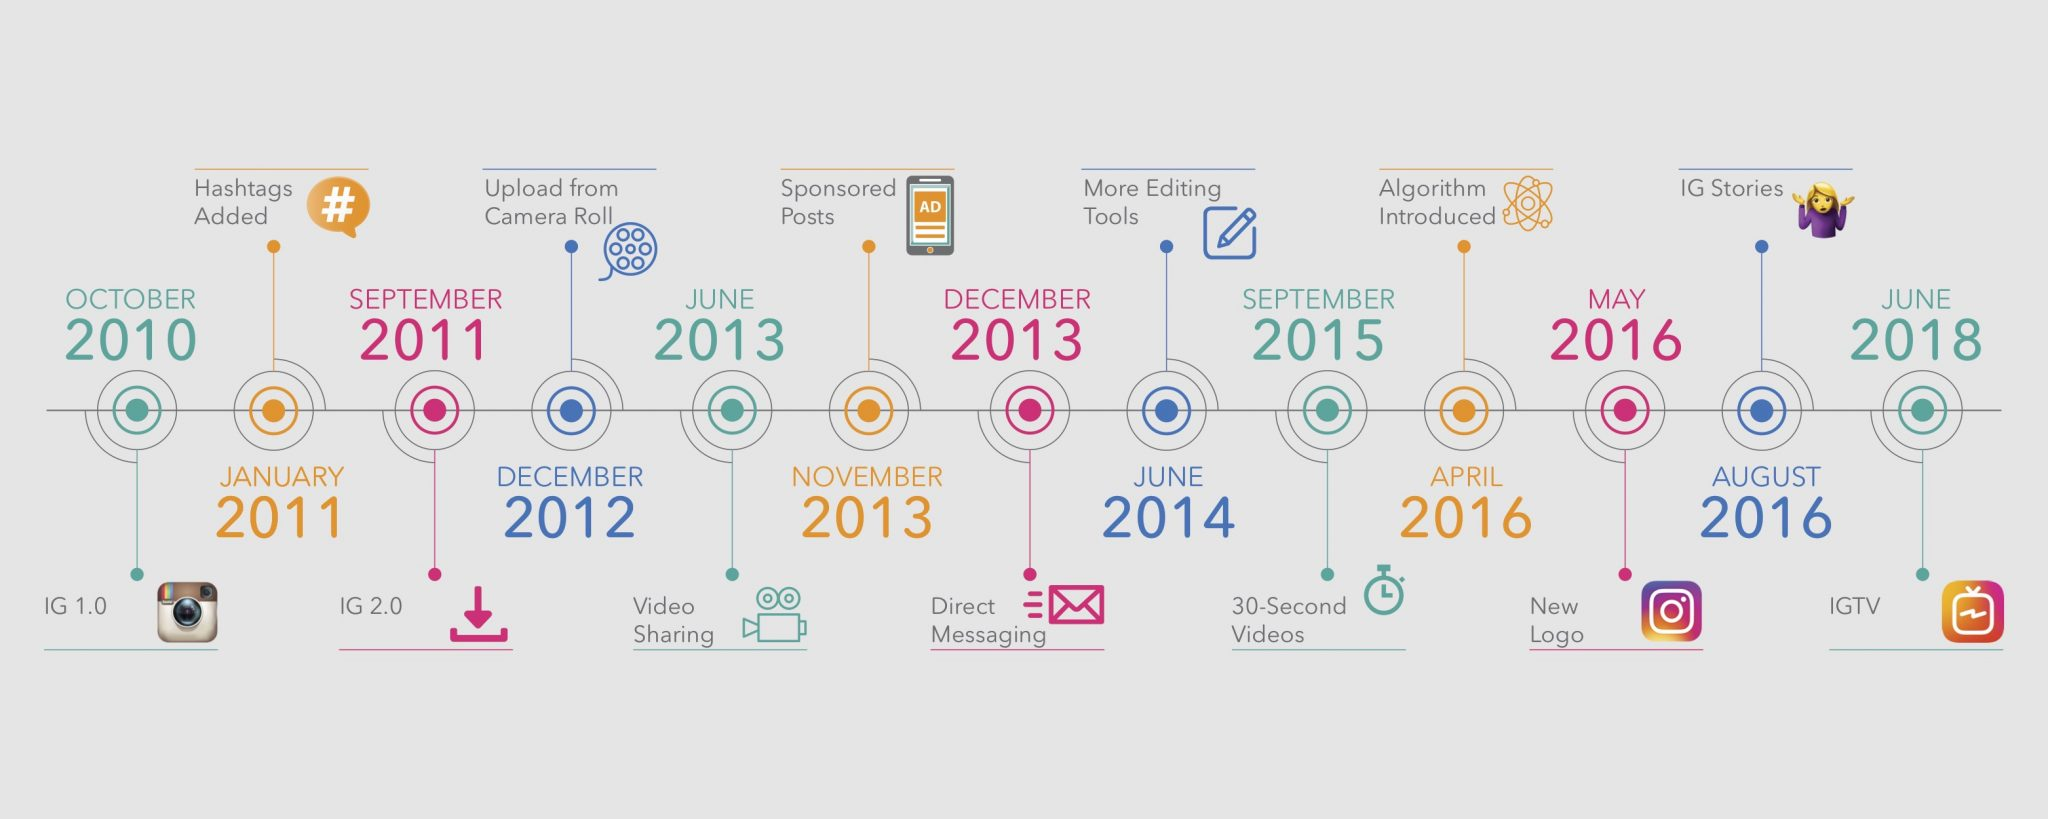 A timeline contains milestones for Instagram application developments